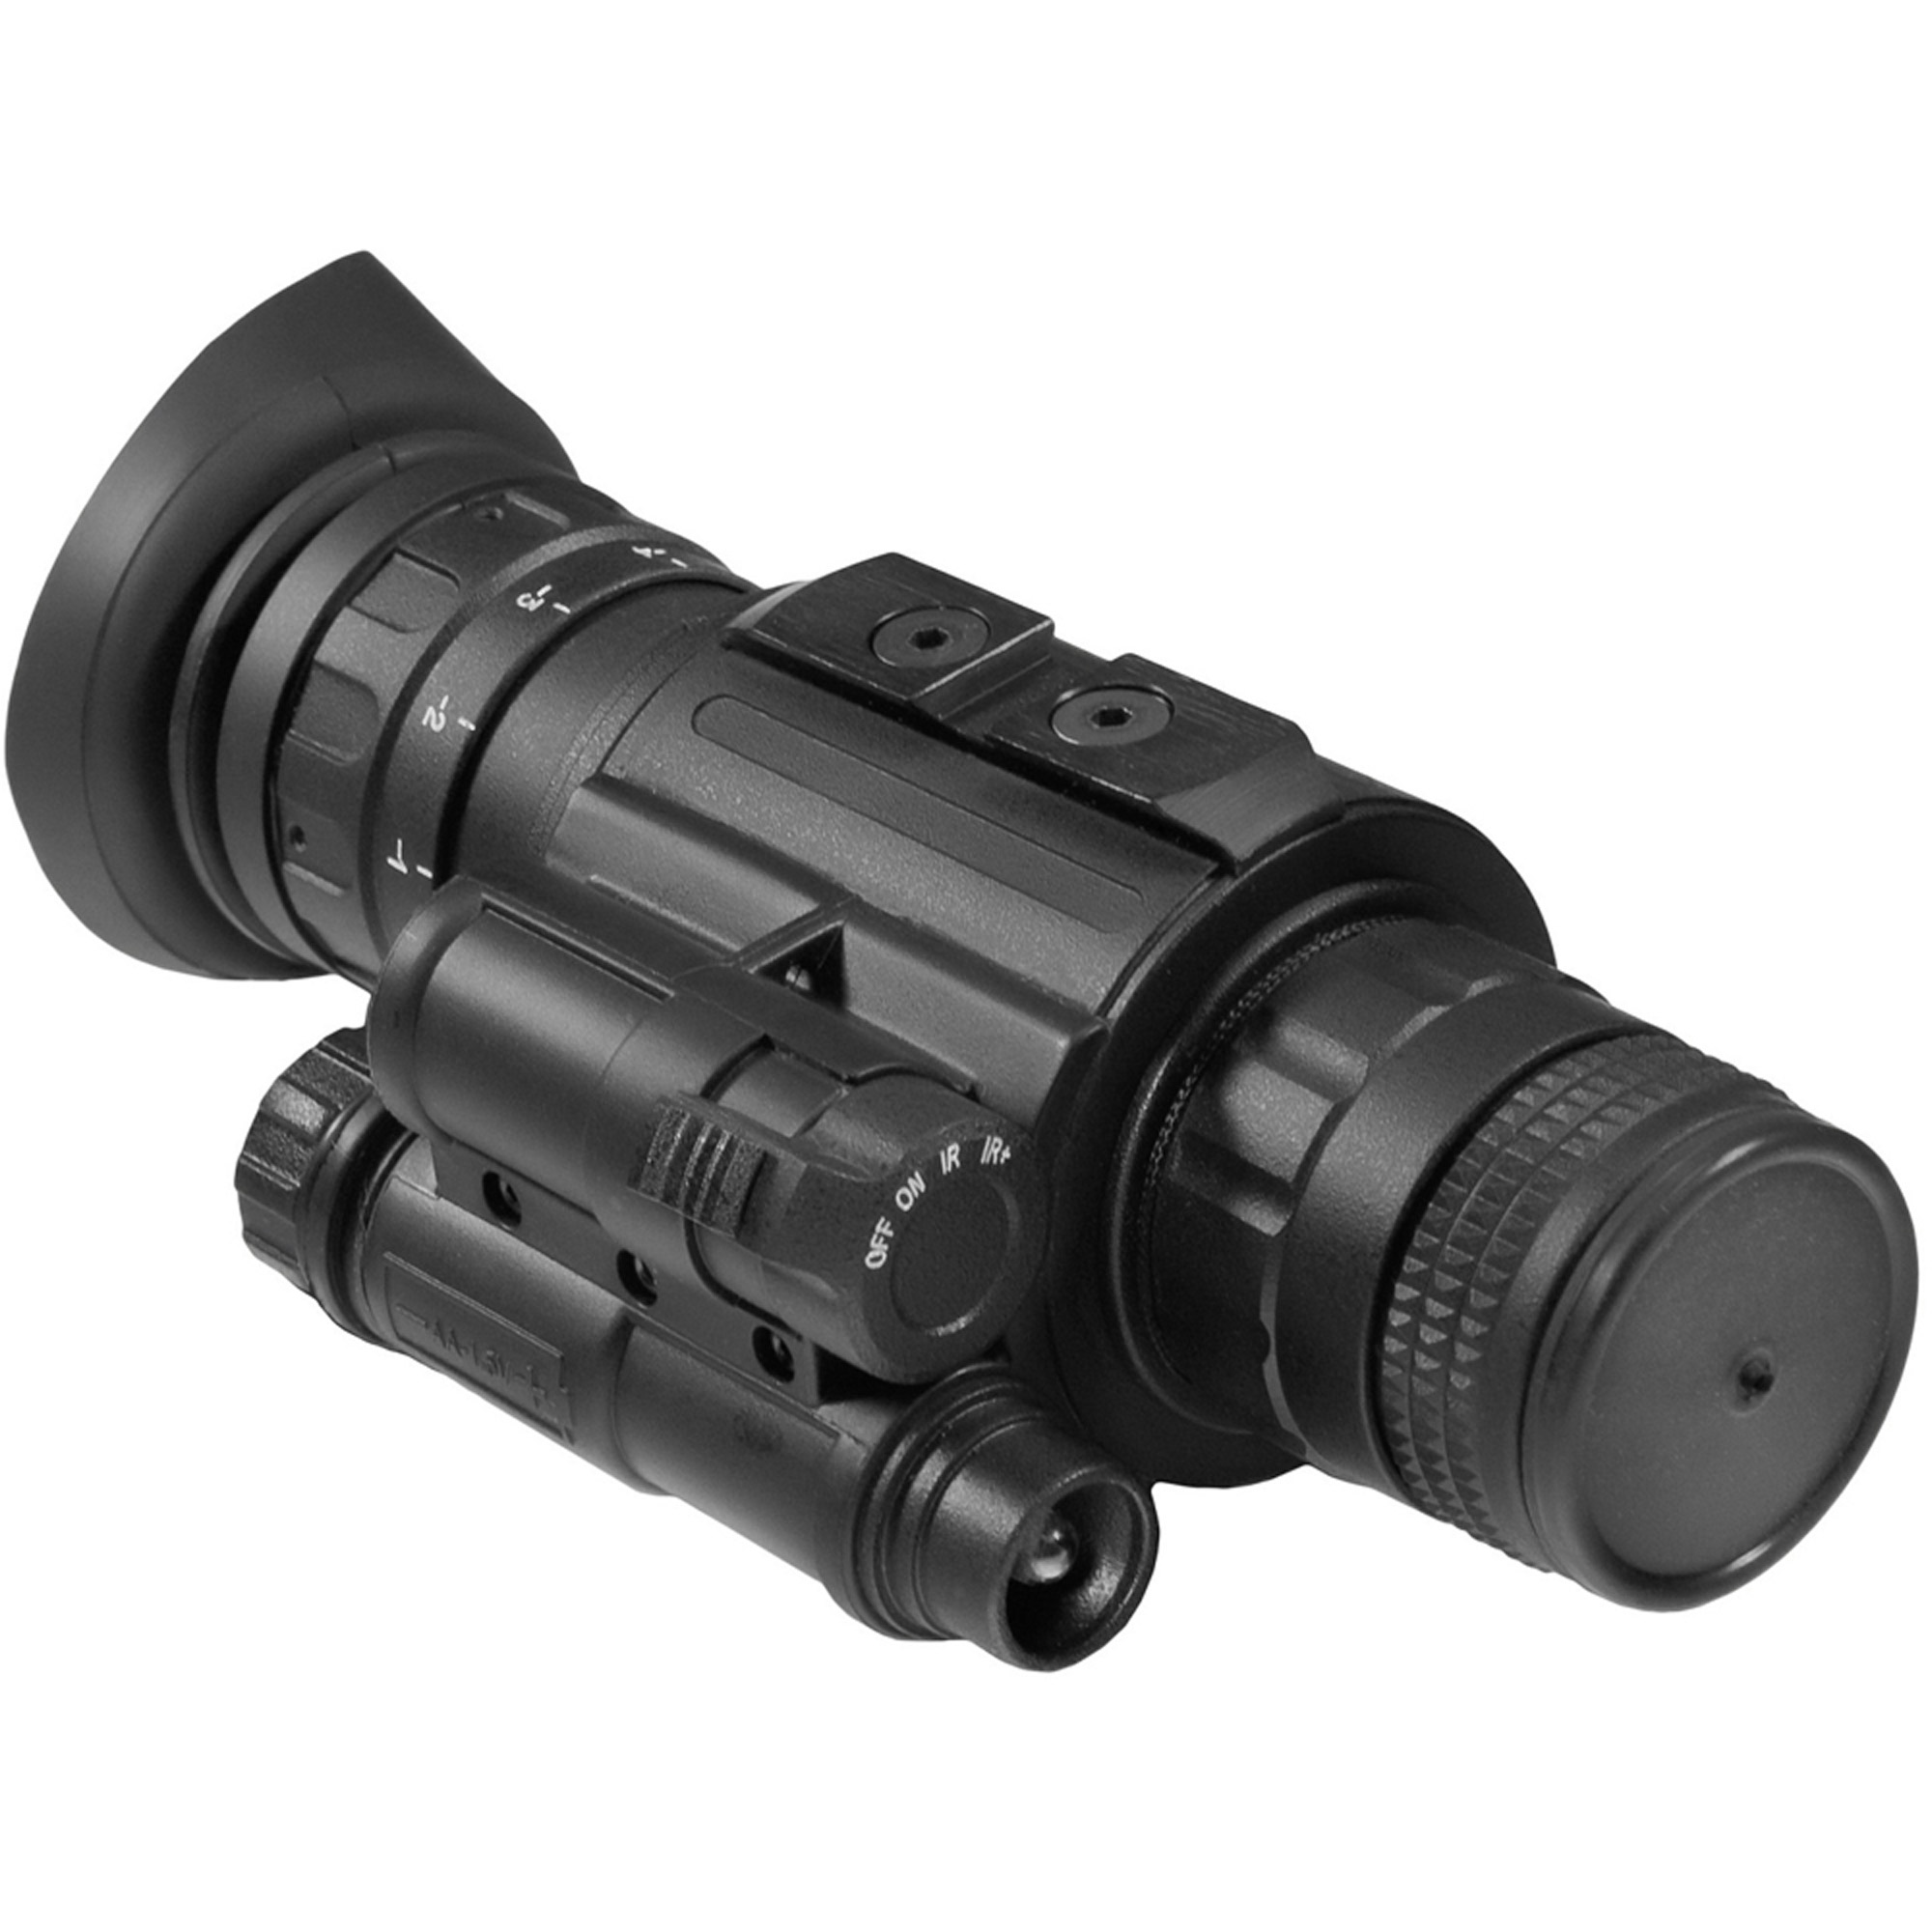 Luna Optics Gen-2+ Elite Mini Monocular 1x Elite Series by LUNA OPTICS